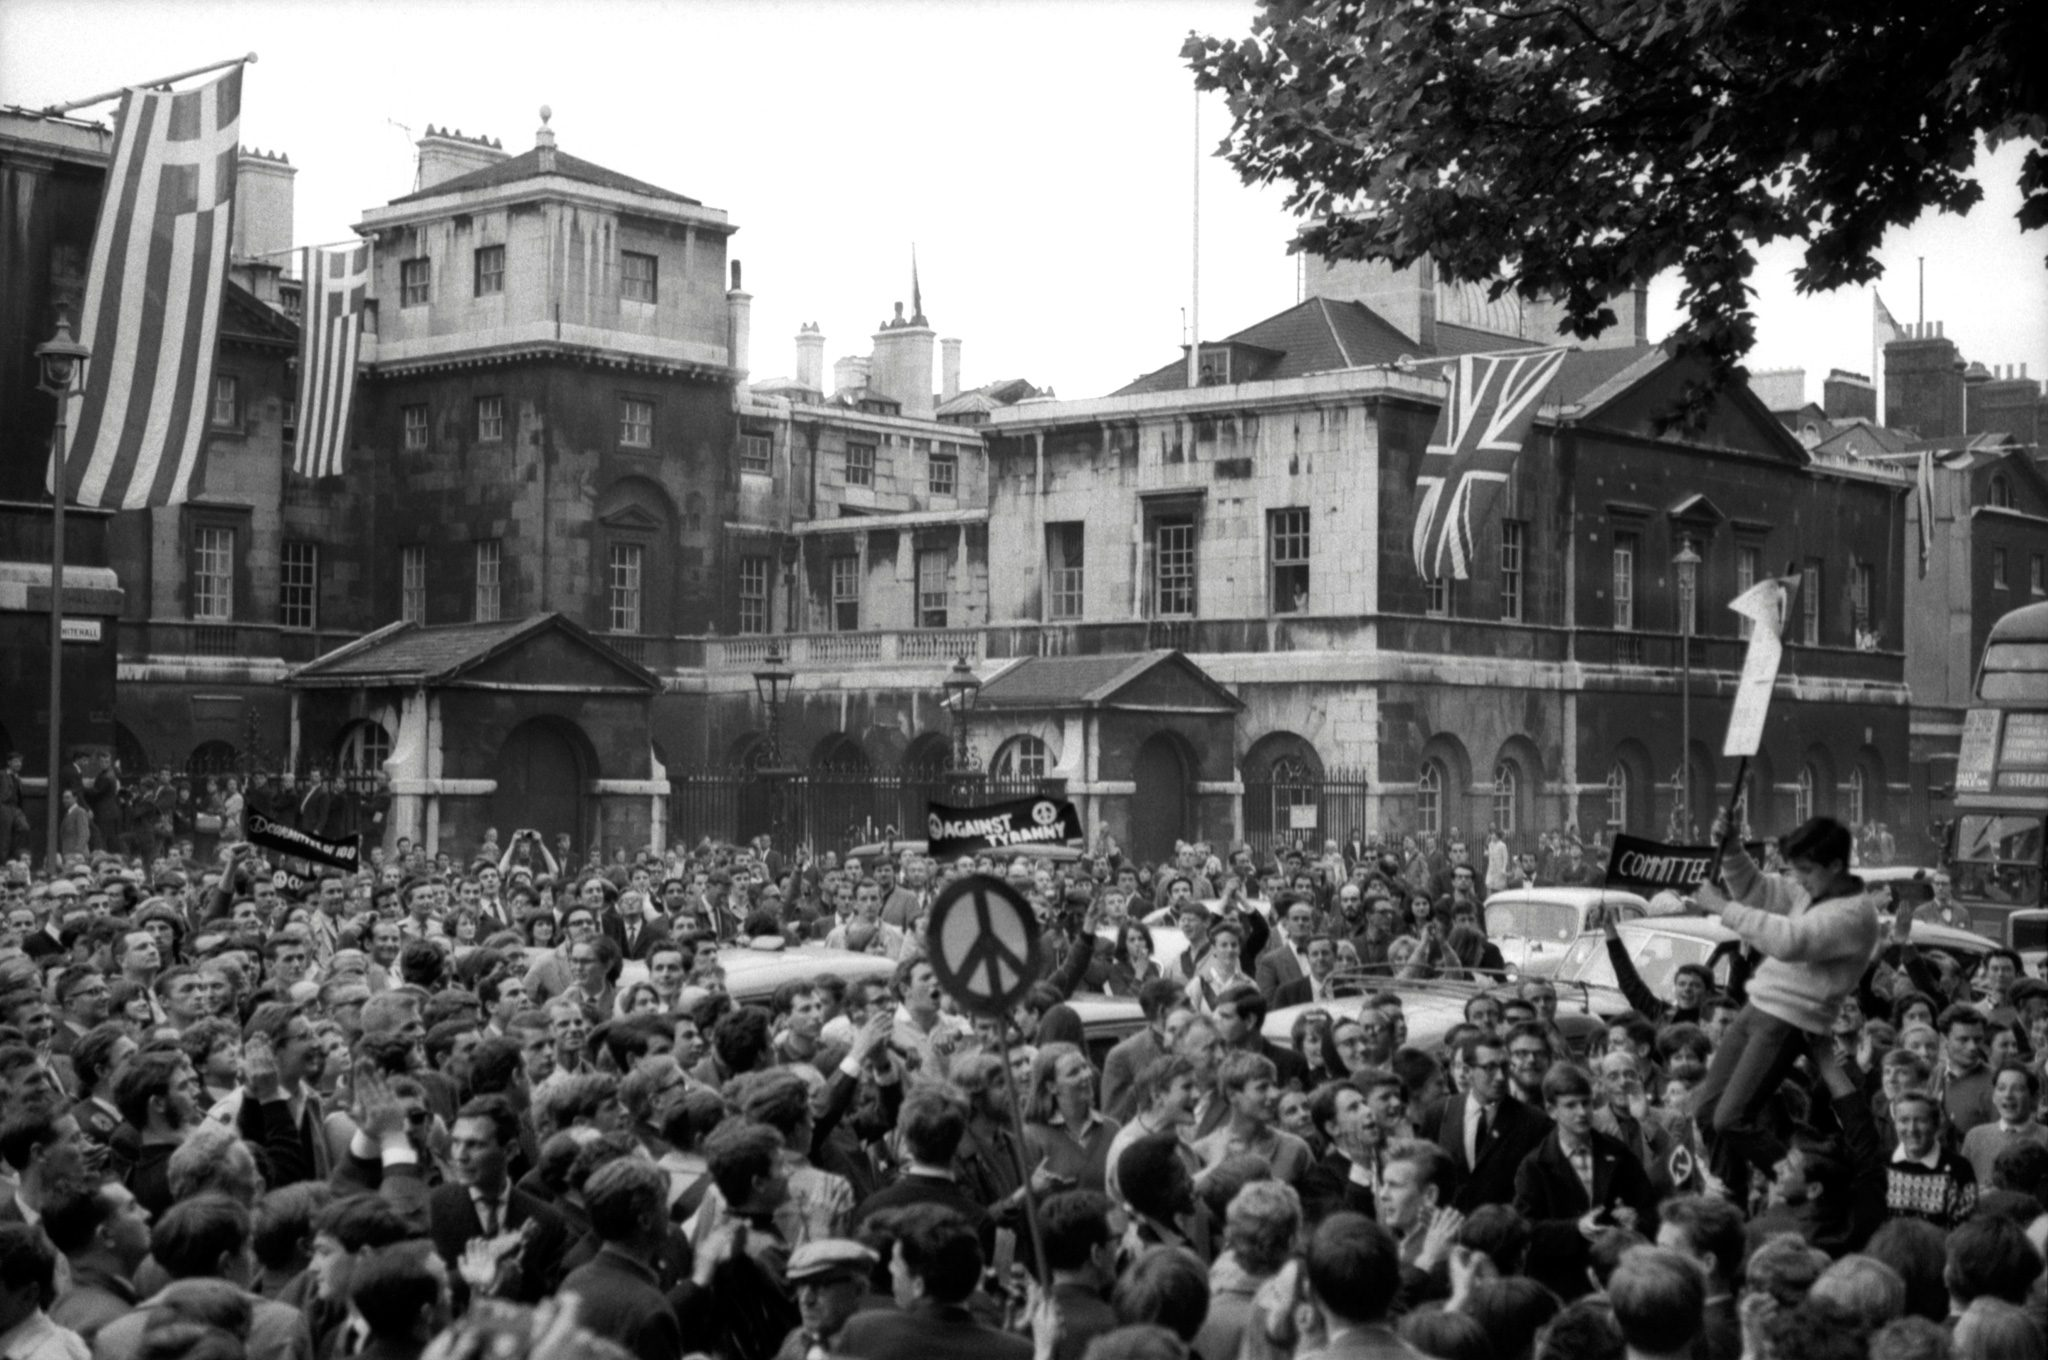 Committee of 100 march 'Against Tyranny'